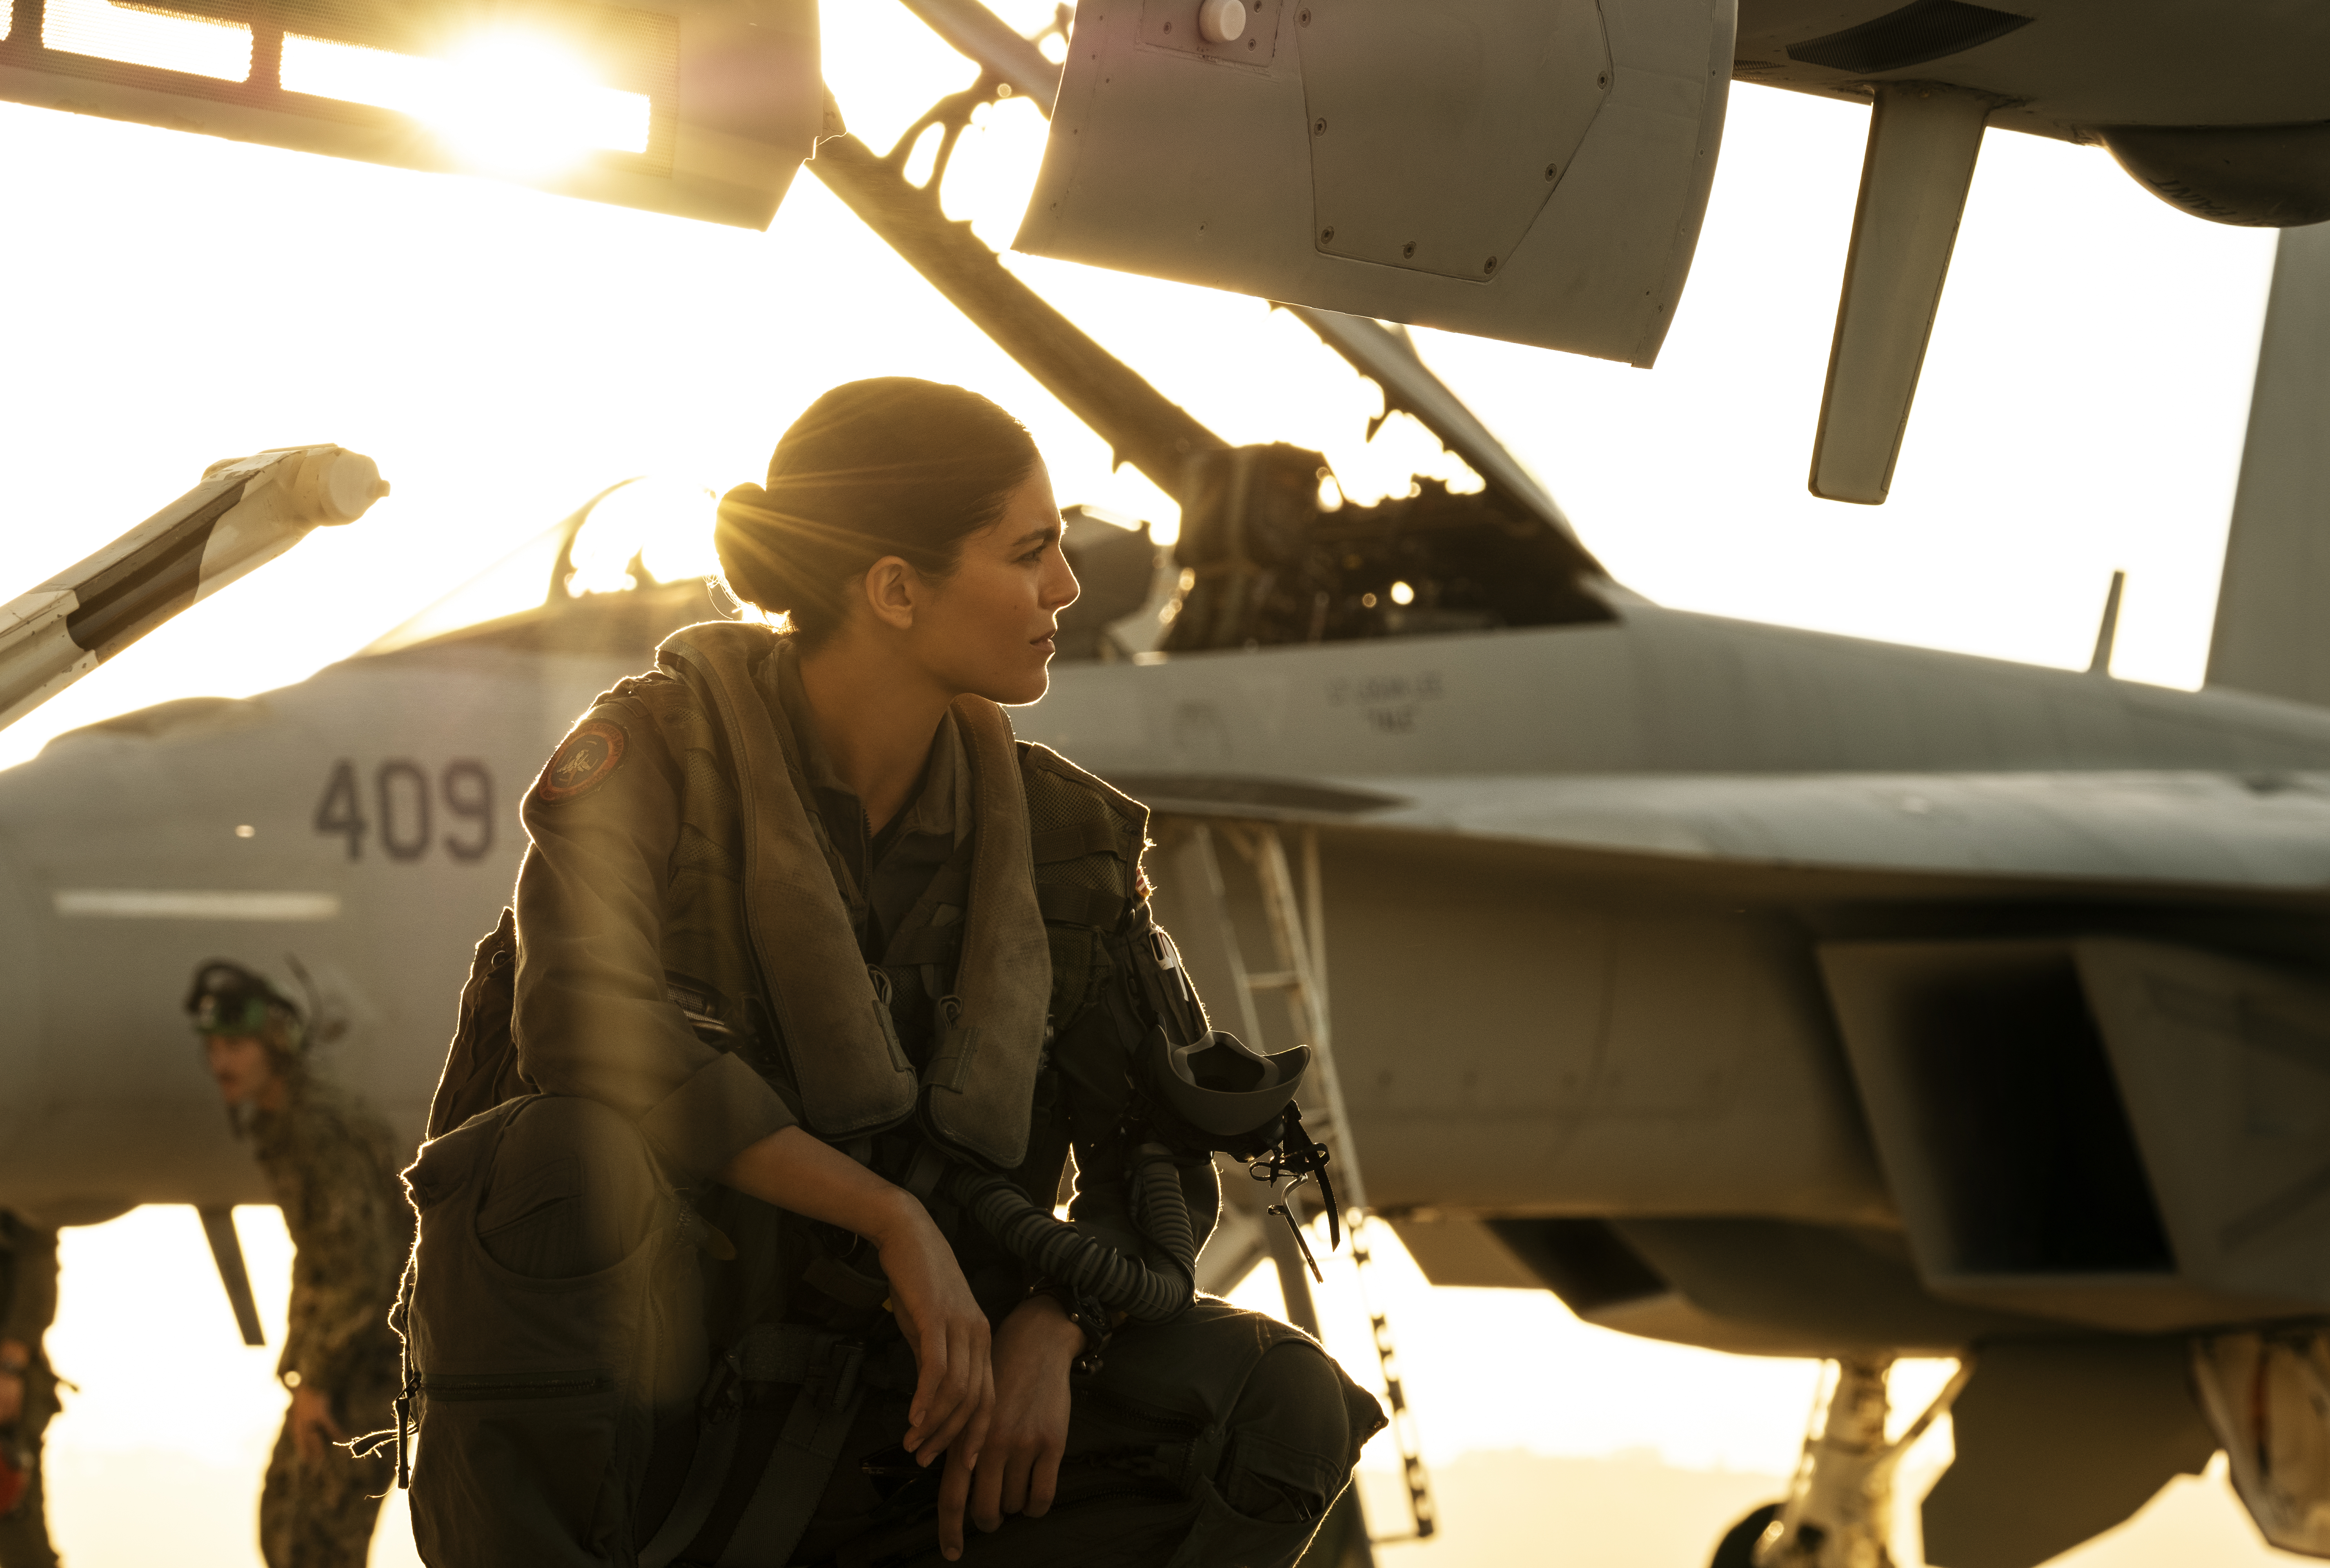 """Monica Barbaro plays """"Phoenix"""" in Top Gun: Maverick from Paramount Pictures, Skydance and Jerry Bruckheimer Films."""